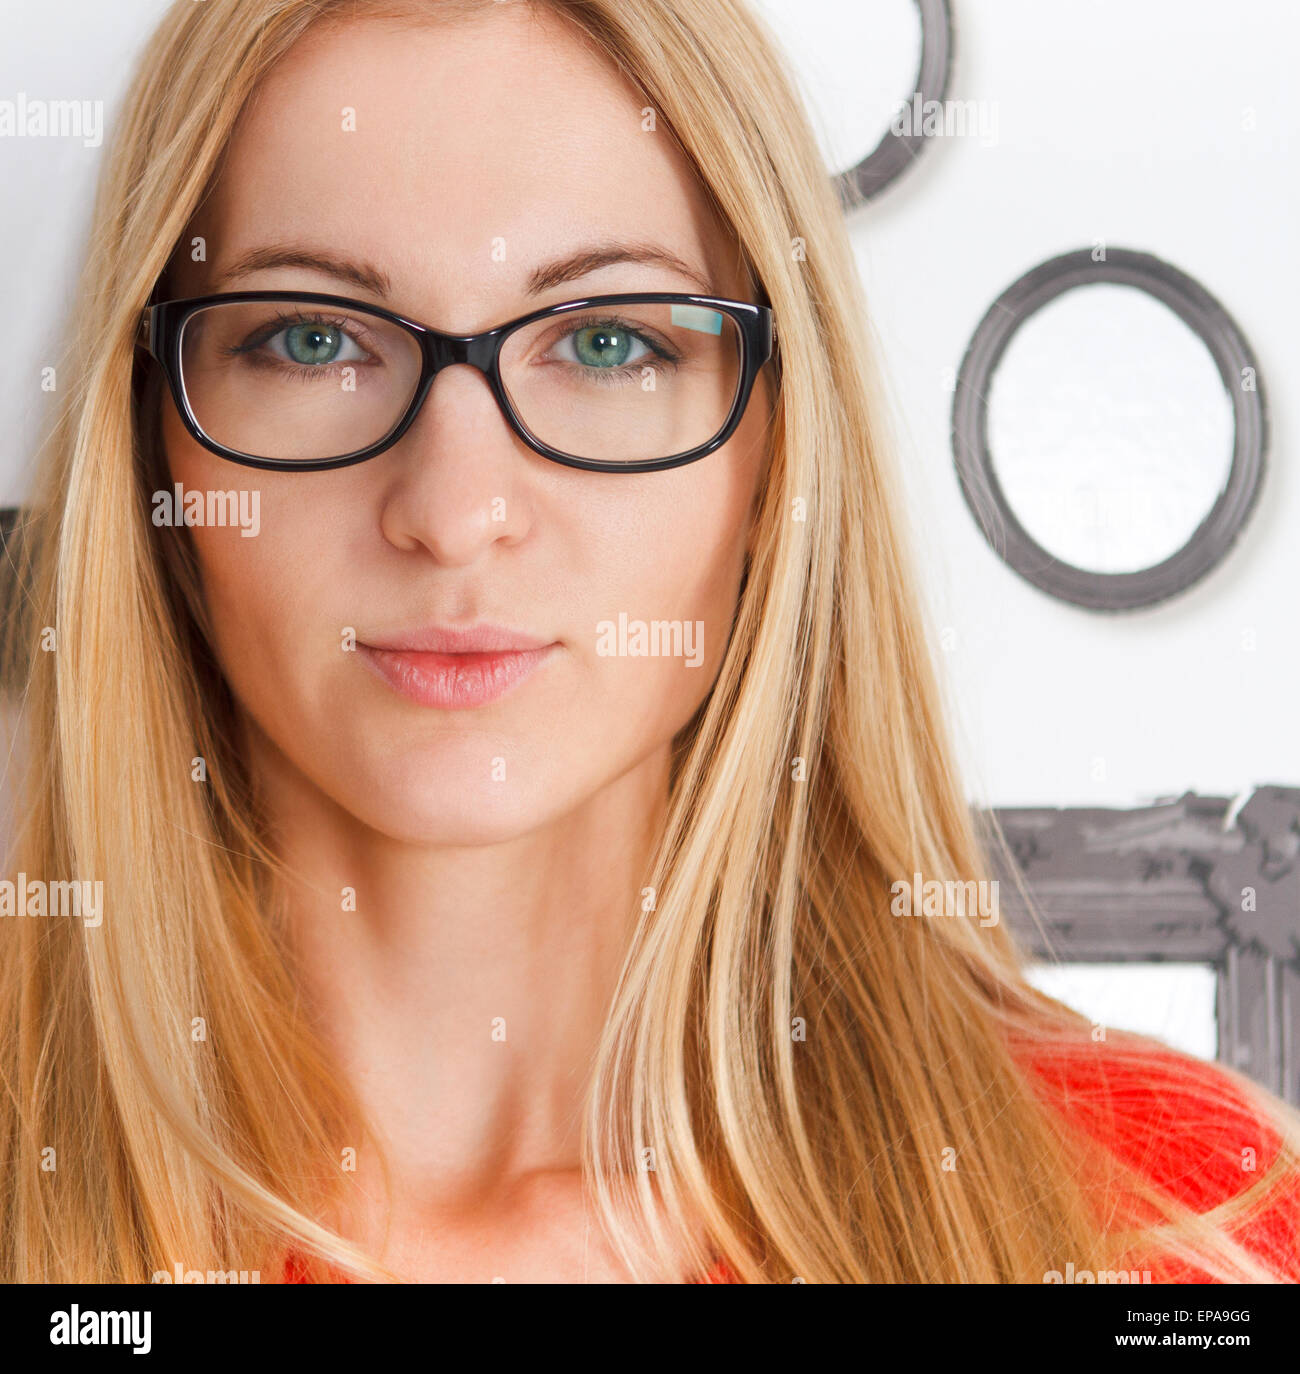 Portrait of the woman wearing black eye glasses - Stock Image